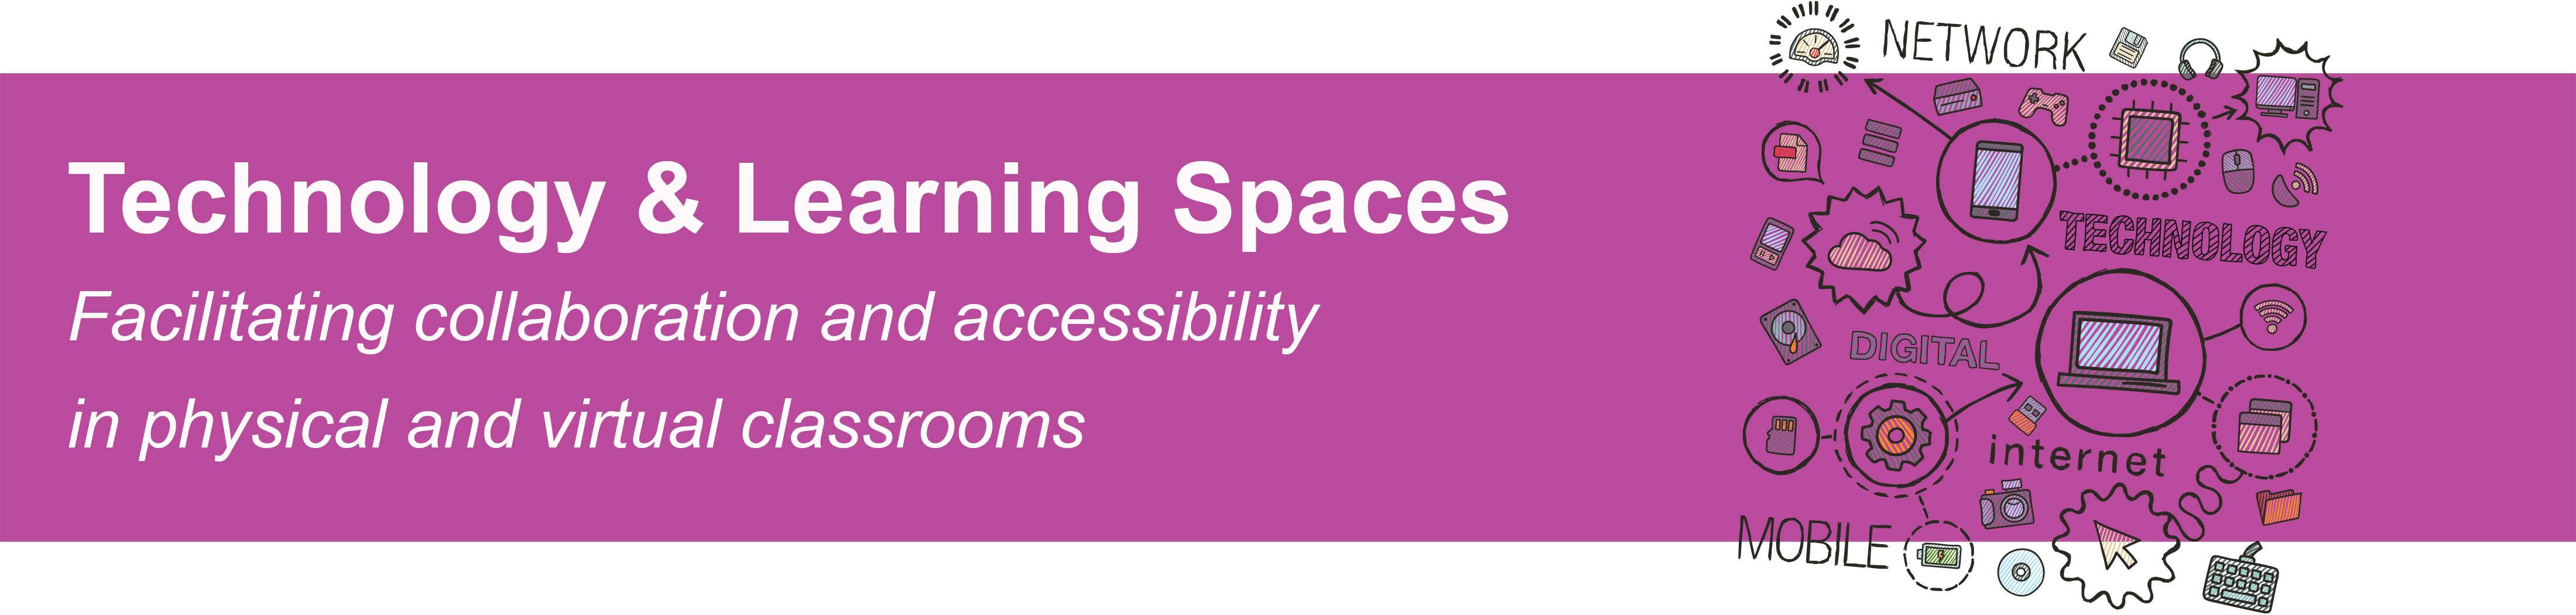 Technology and Learning Spaces